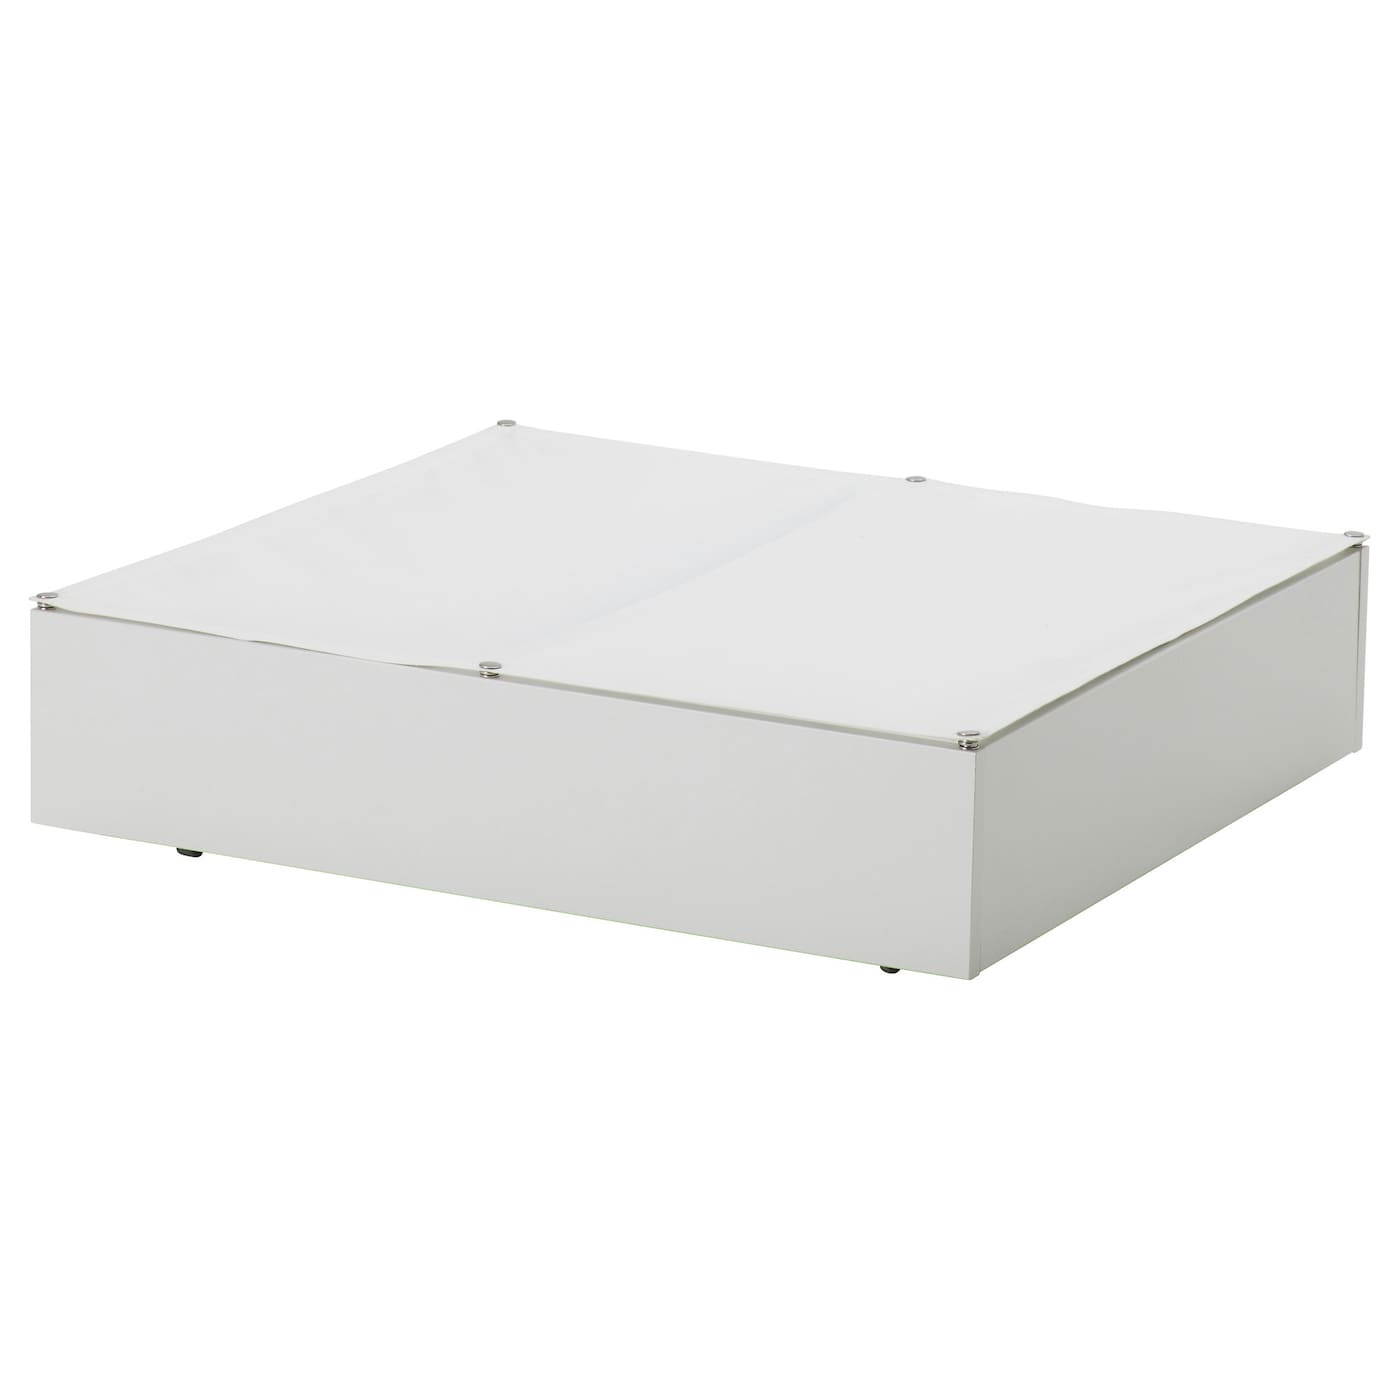 vard bed storage box white 65x70 cm ikea. Black Bedroom Furniture Sets. Home Design Ideas